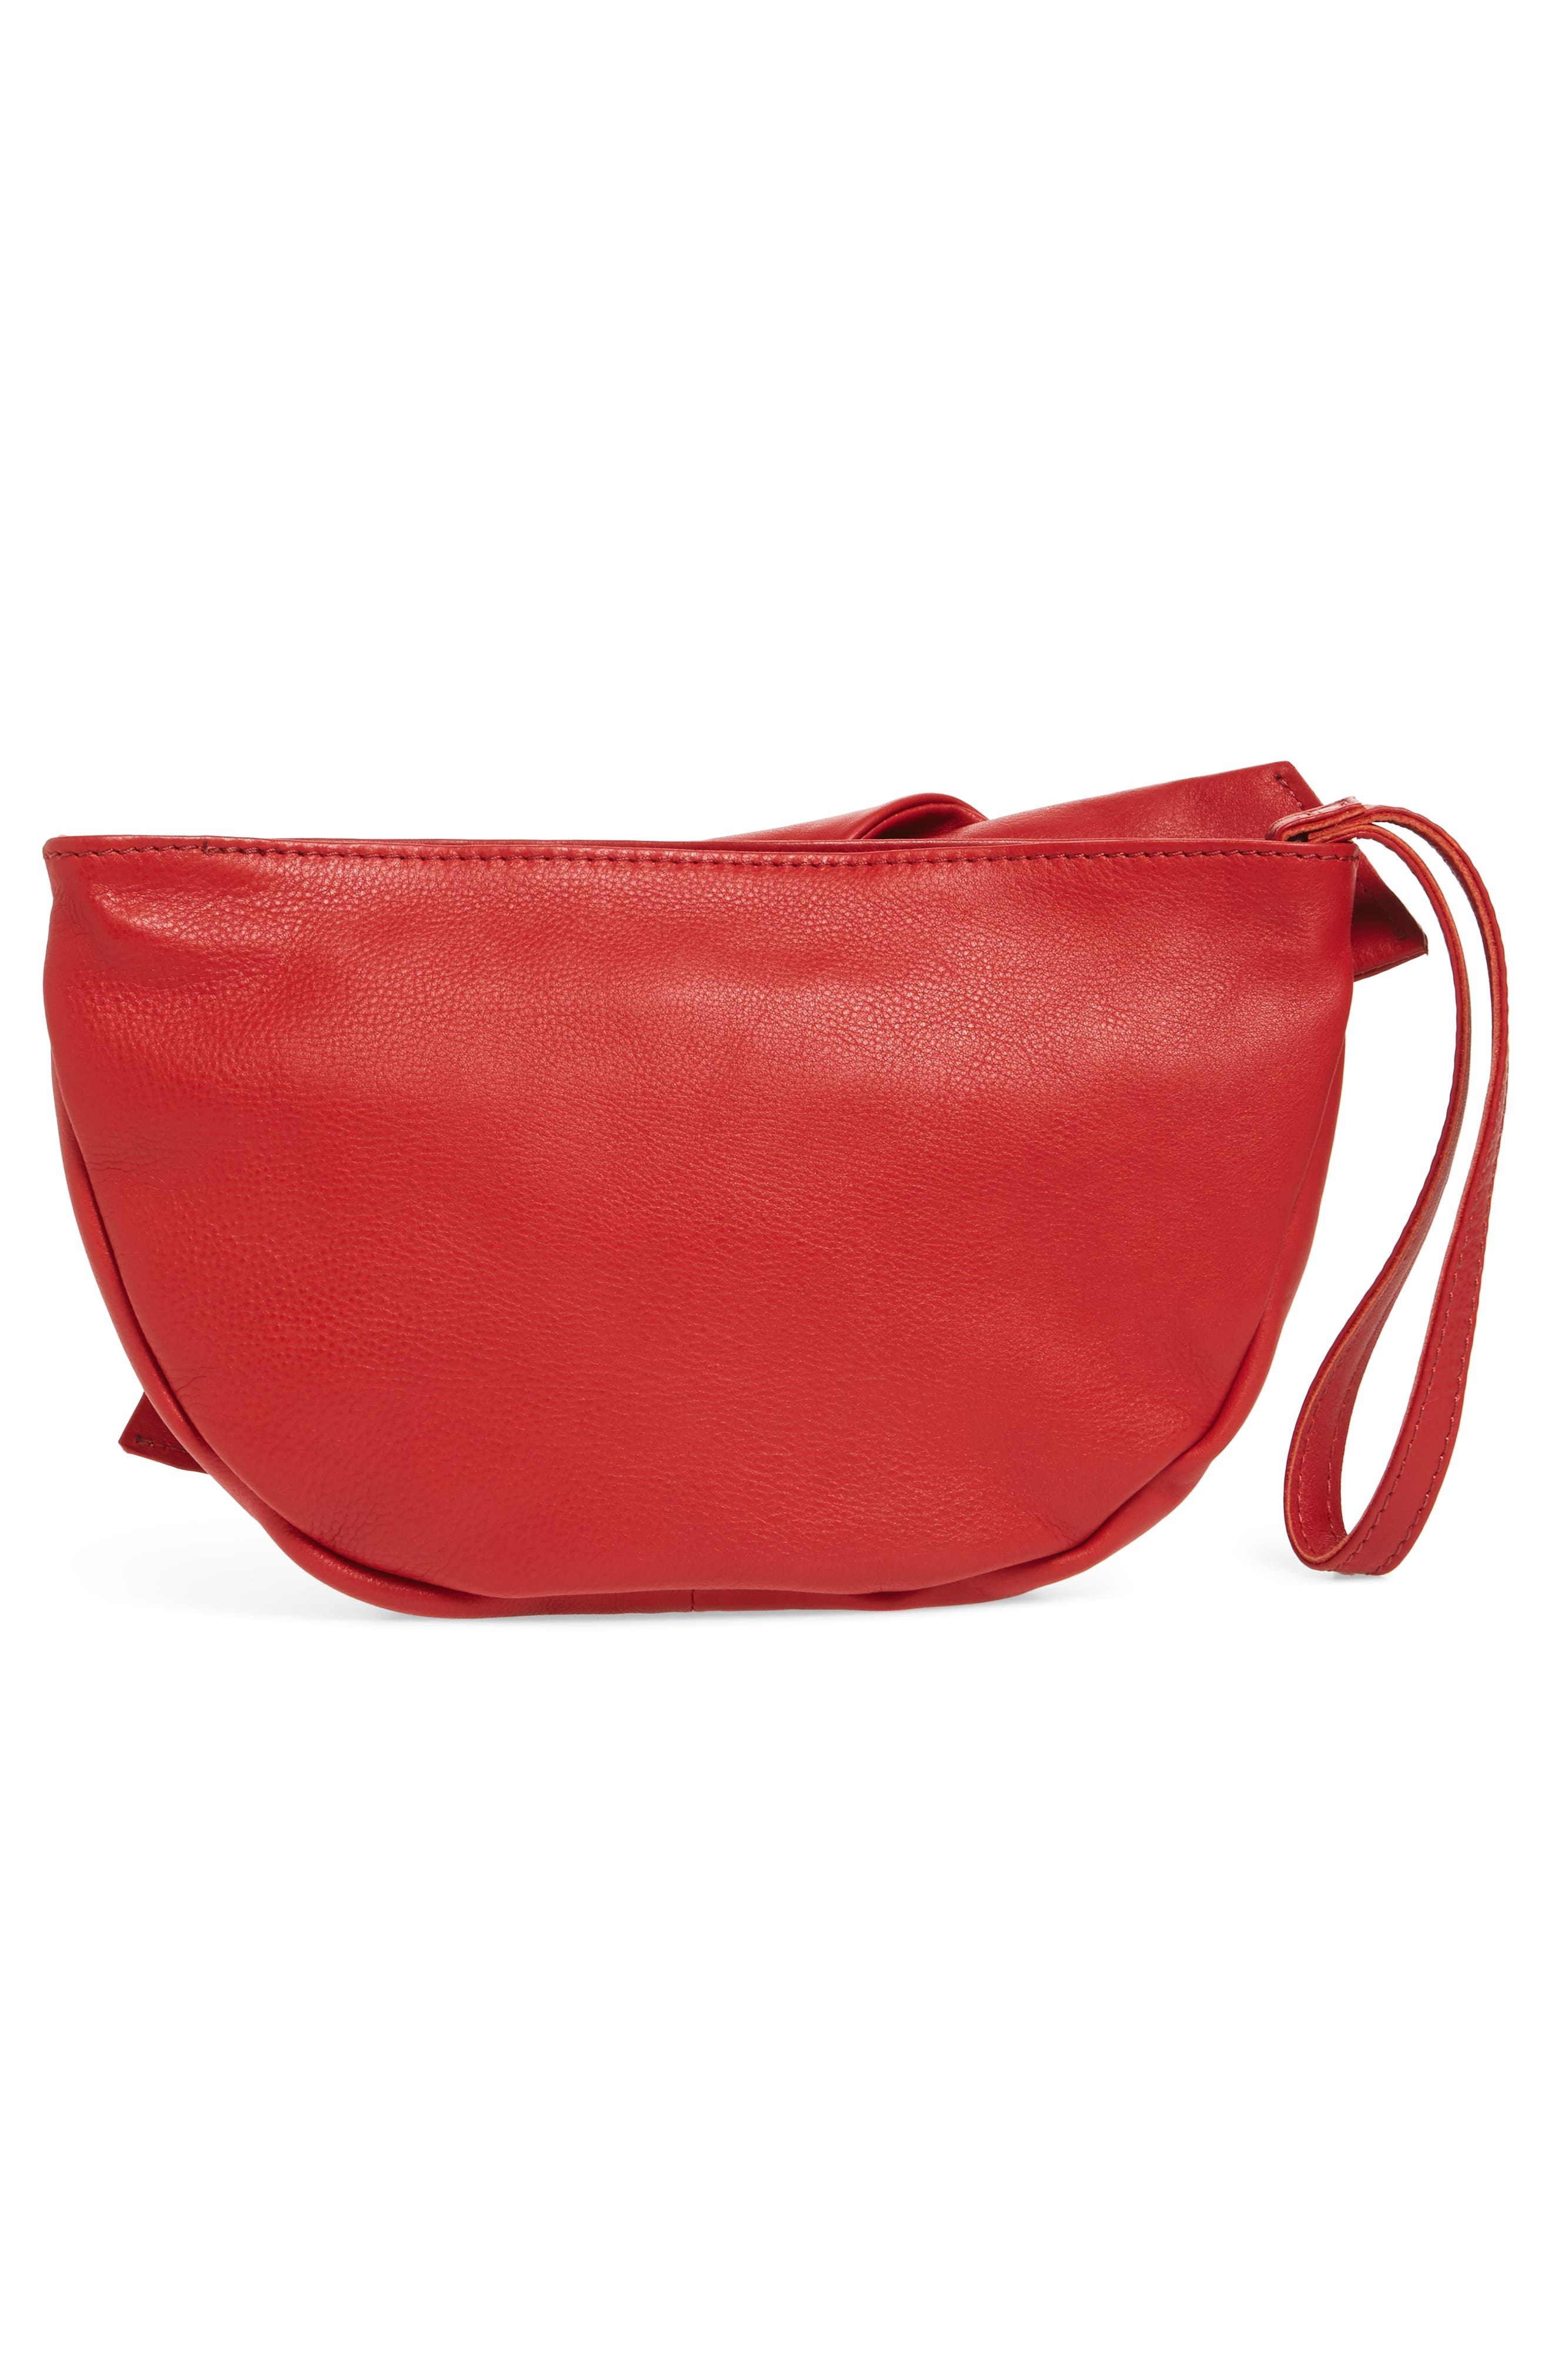 Jasmine Leather Clutch,                             Alternate thumbnail 6, color,